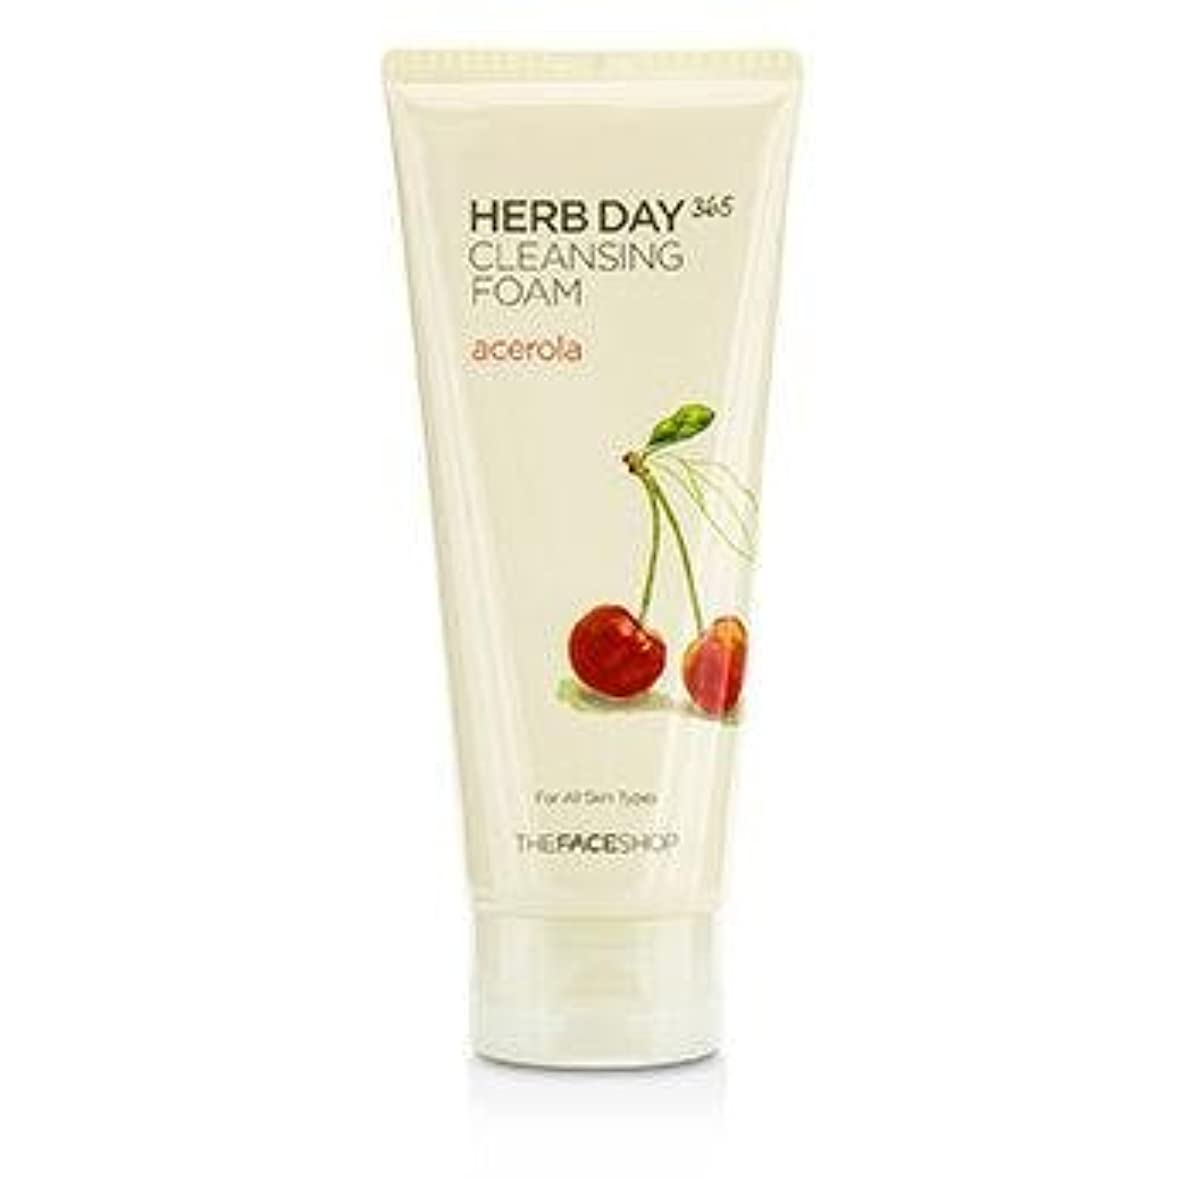 欺正直緩めるTHE FACE SHOP Herb Day 365 Cleansing Foam Acerola (並行輸入品)